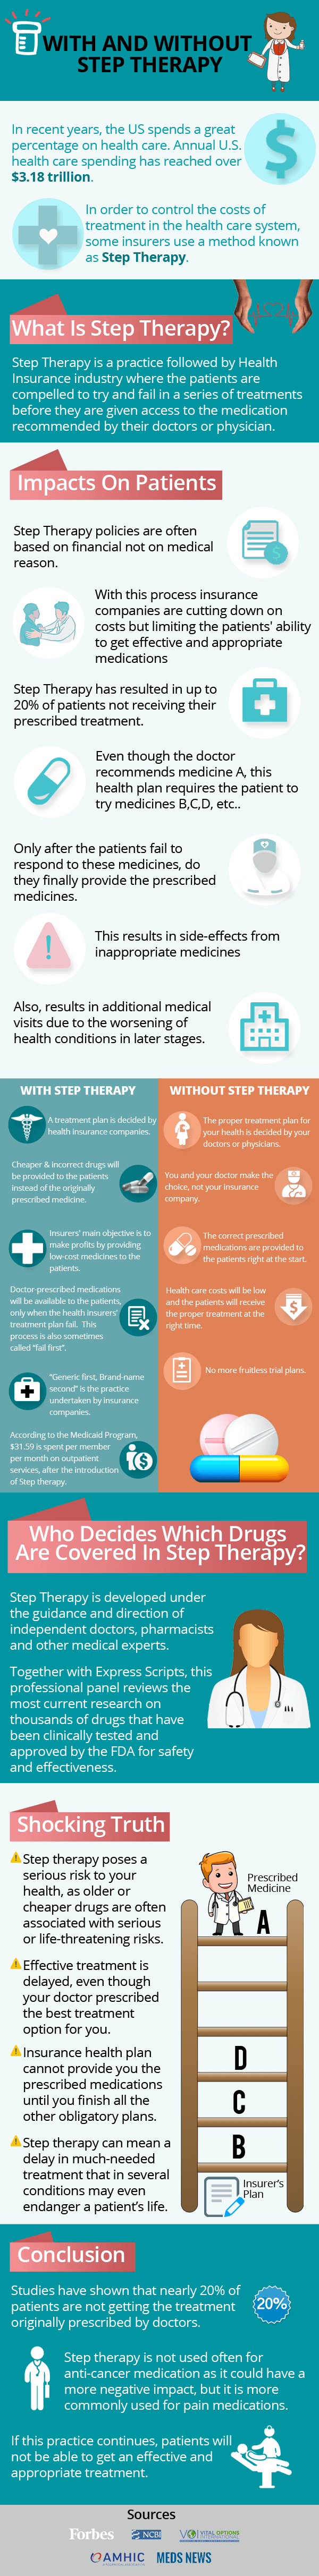 With & Without Step Therapy Therapy, Infographic, Health